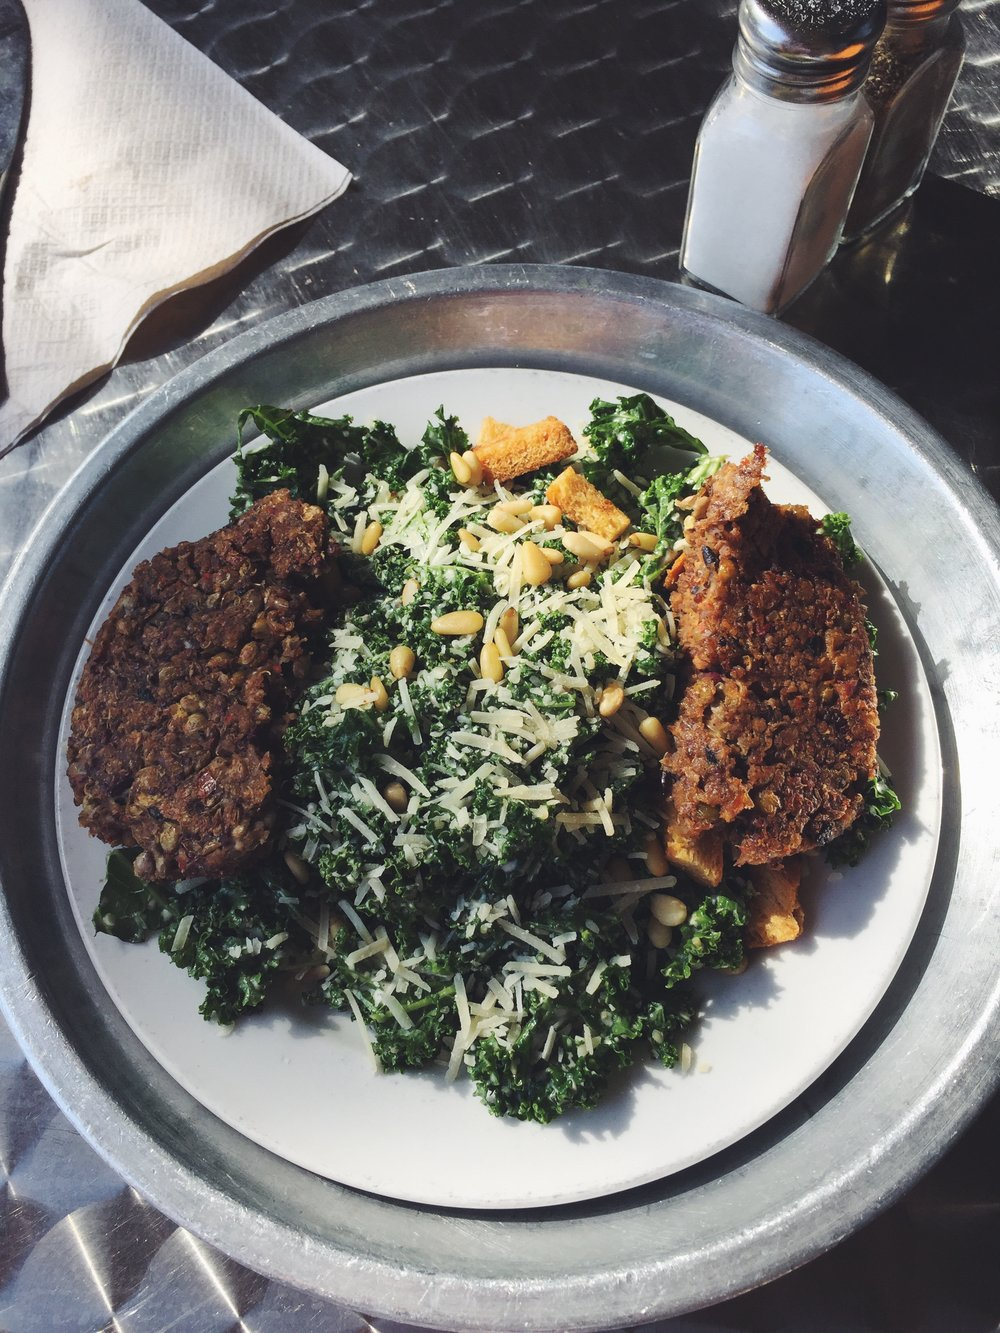 Kale Caesar Salad with a silo burger patty from City Silo